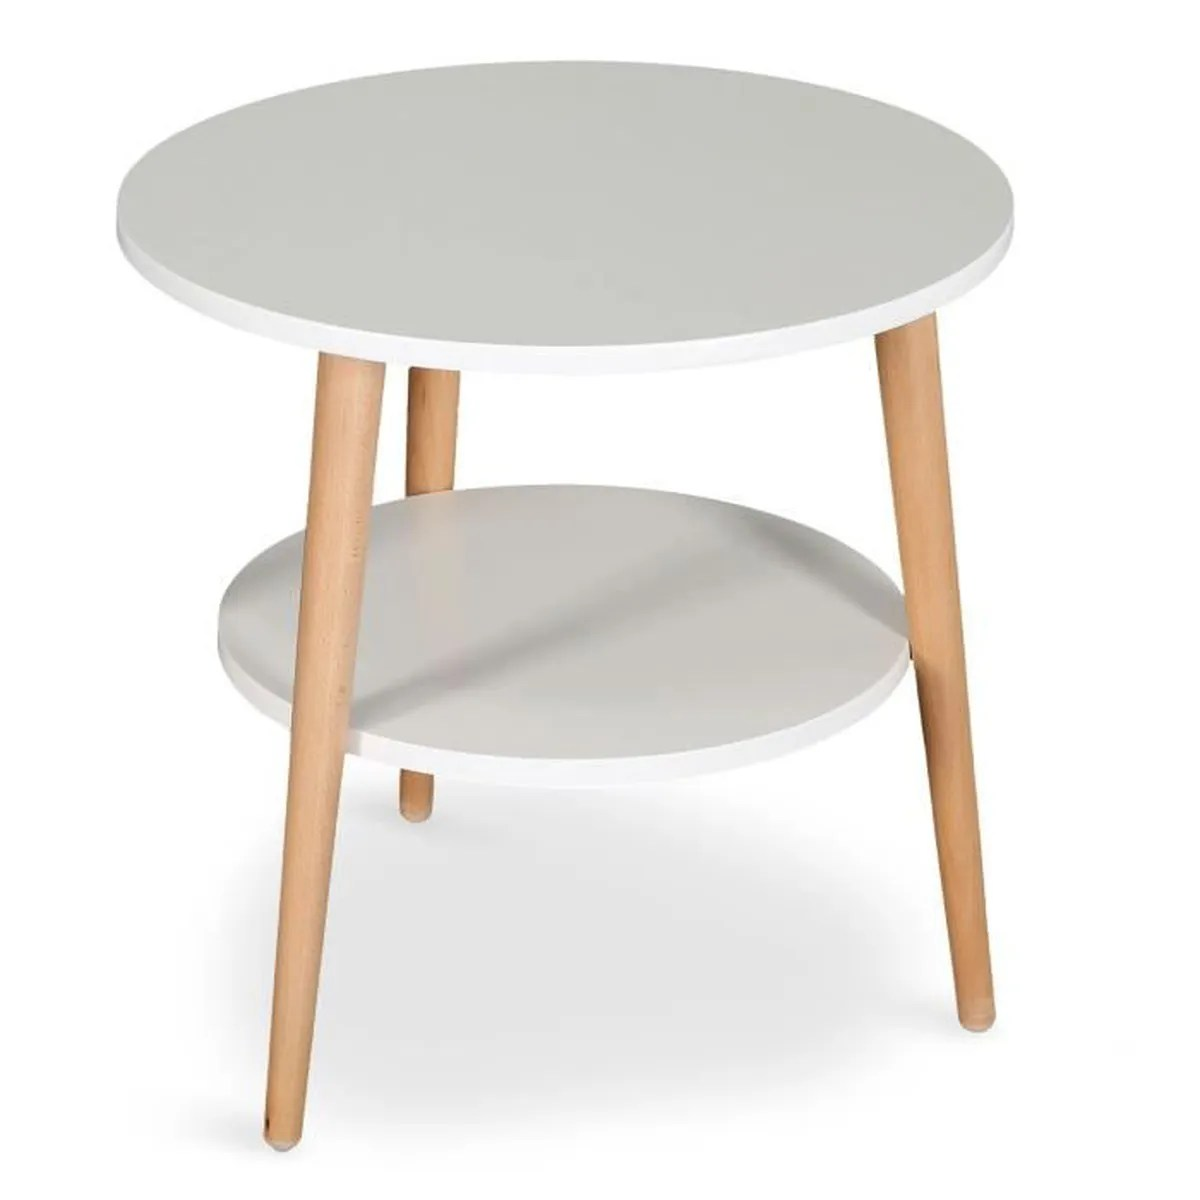 Table Haute Et Basse Mange Debout Table De Bar Table Haute Table Basse Dappoint